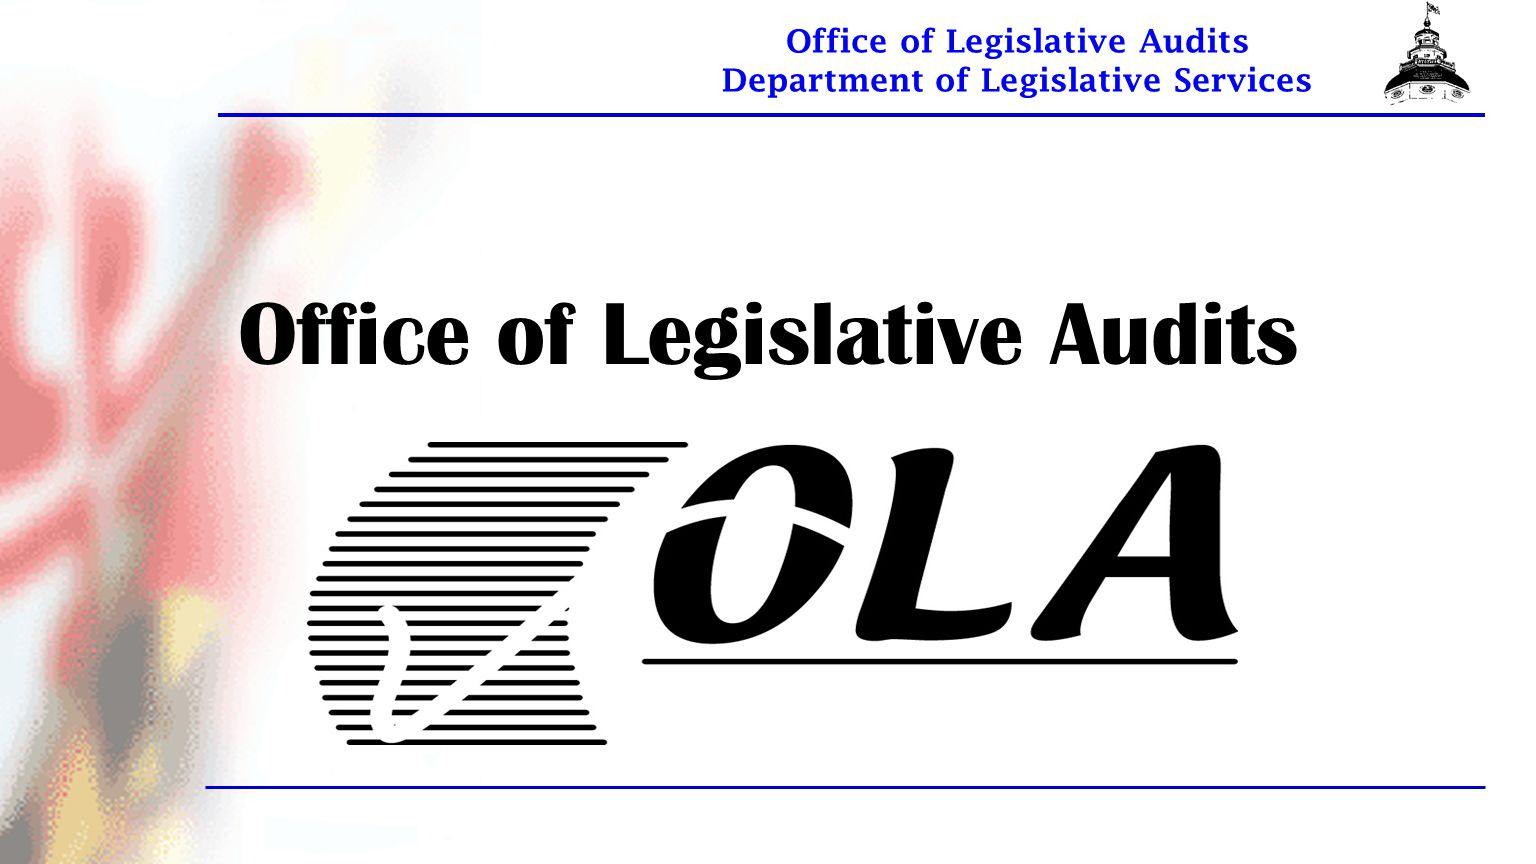 Office of Legislative Audits Department of Legislative Services OLA has 4 Divisions.